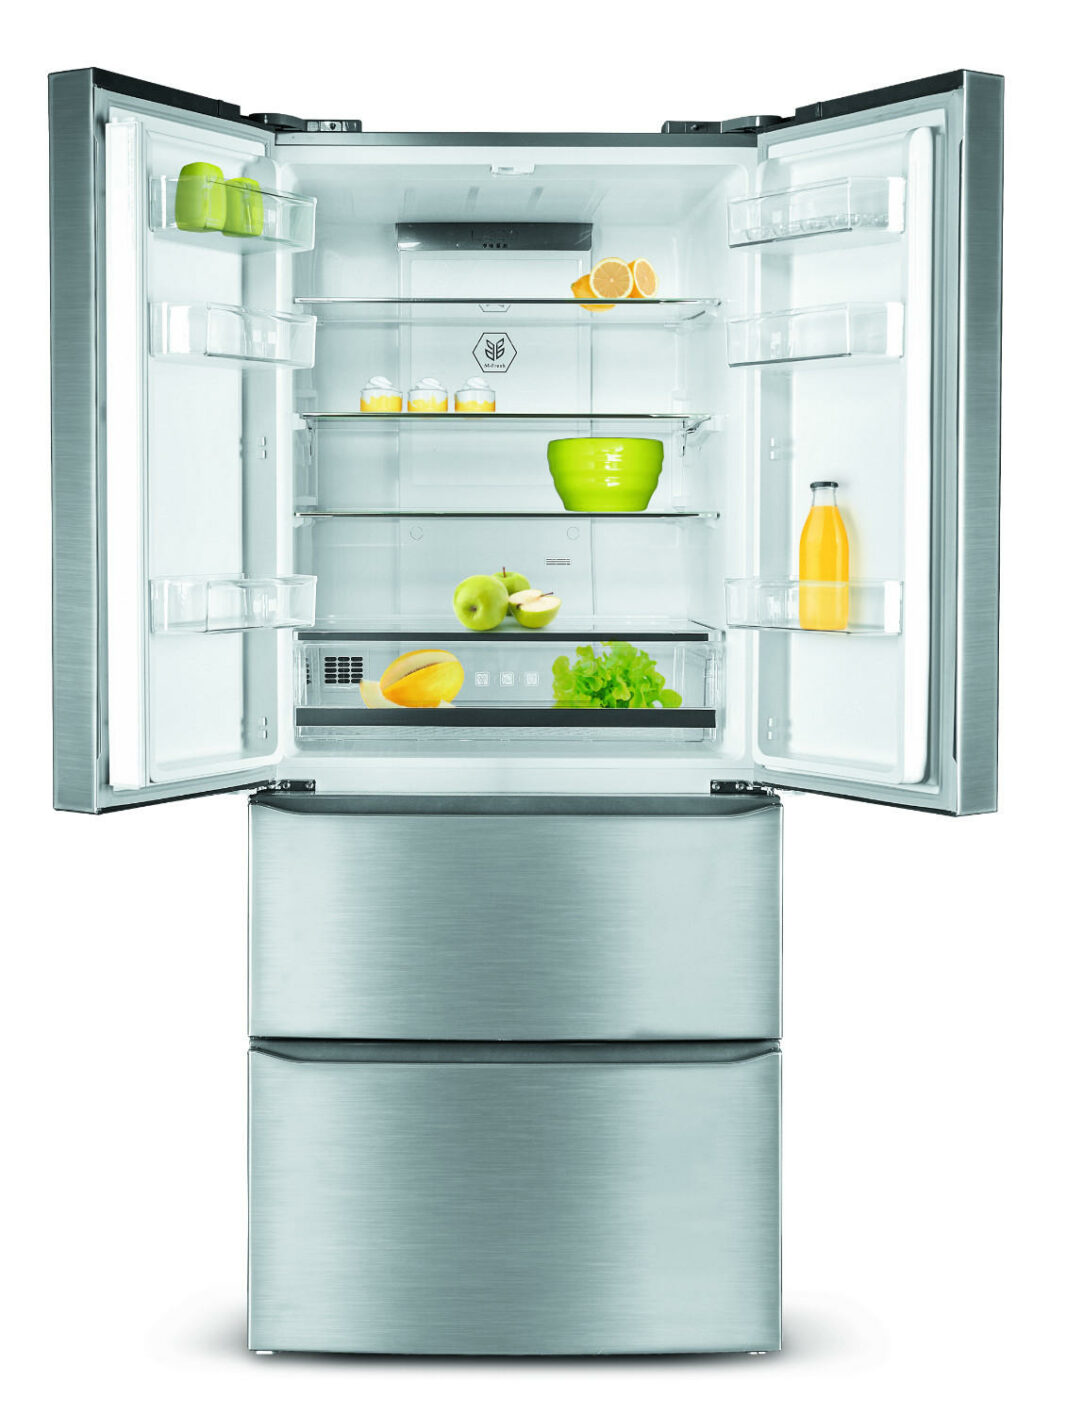 Stainless steel refrigerator freezer combo with French door 412 L - Schneider